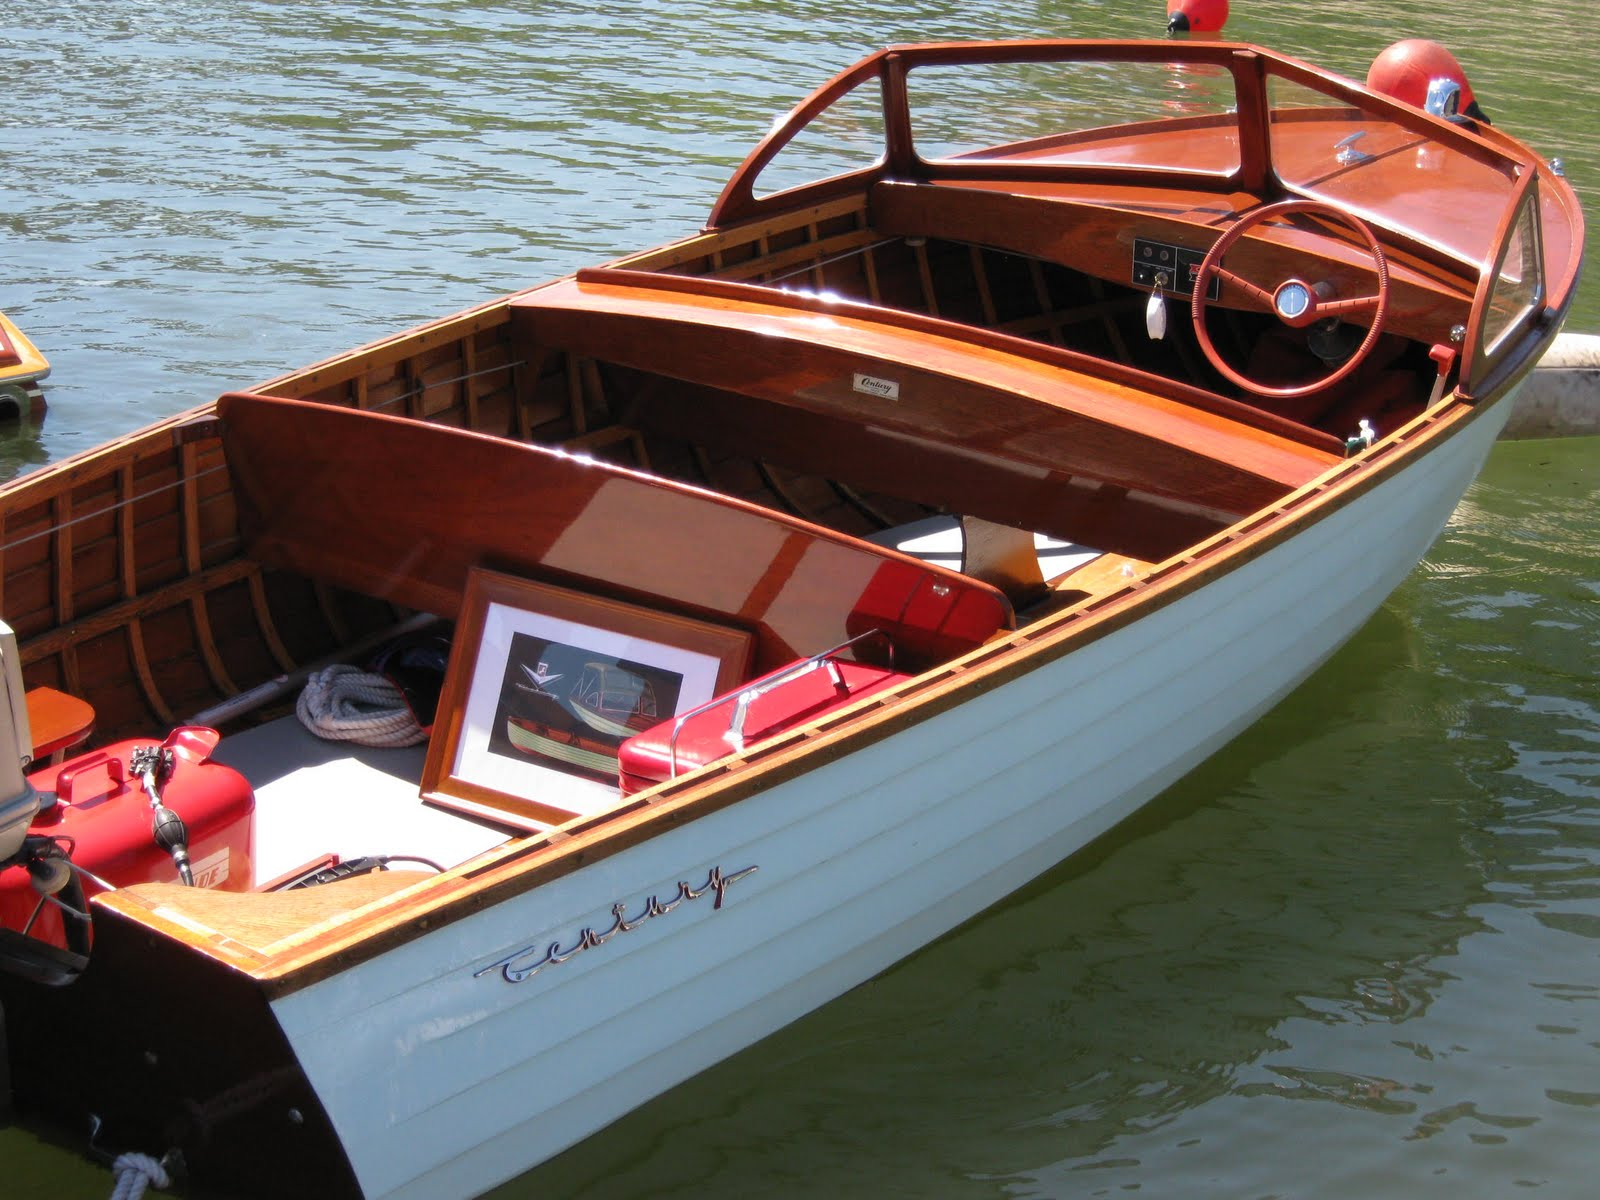 18th Annual Portland Boat Show – A Summer Classic | Classic Boats / Woody Boater